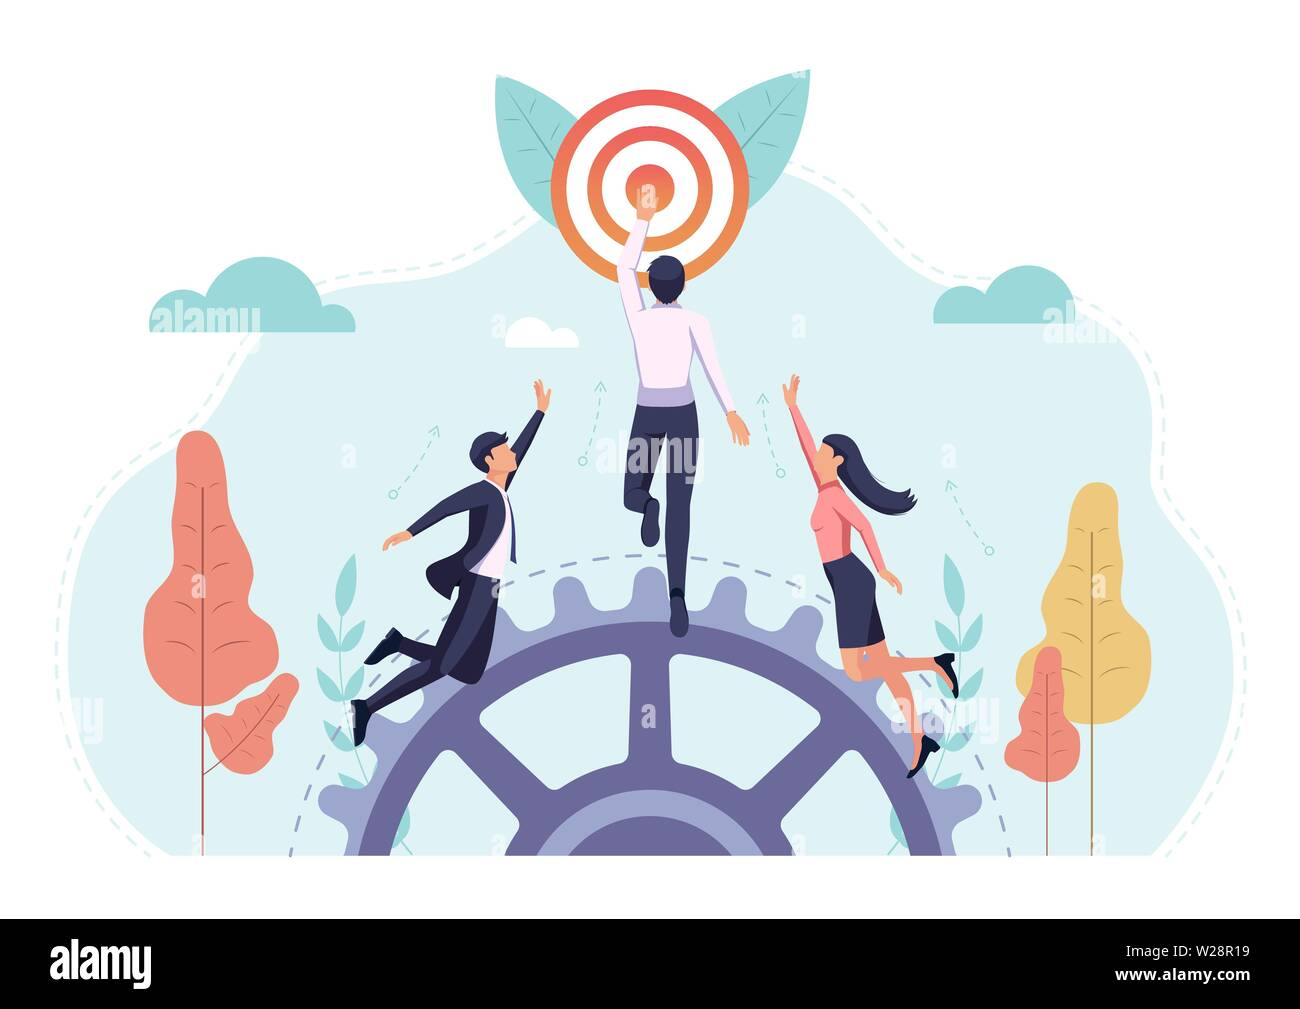 Business people race to reach the target first. Busienss target and competition cnocept. Stock Vector